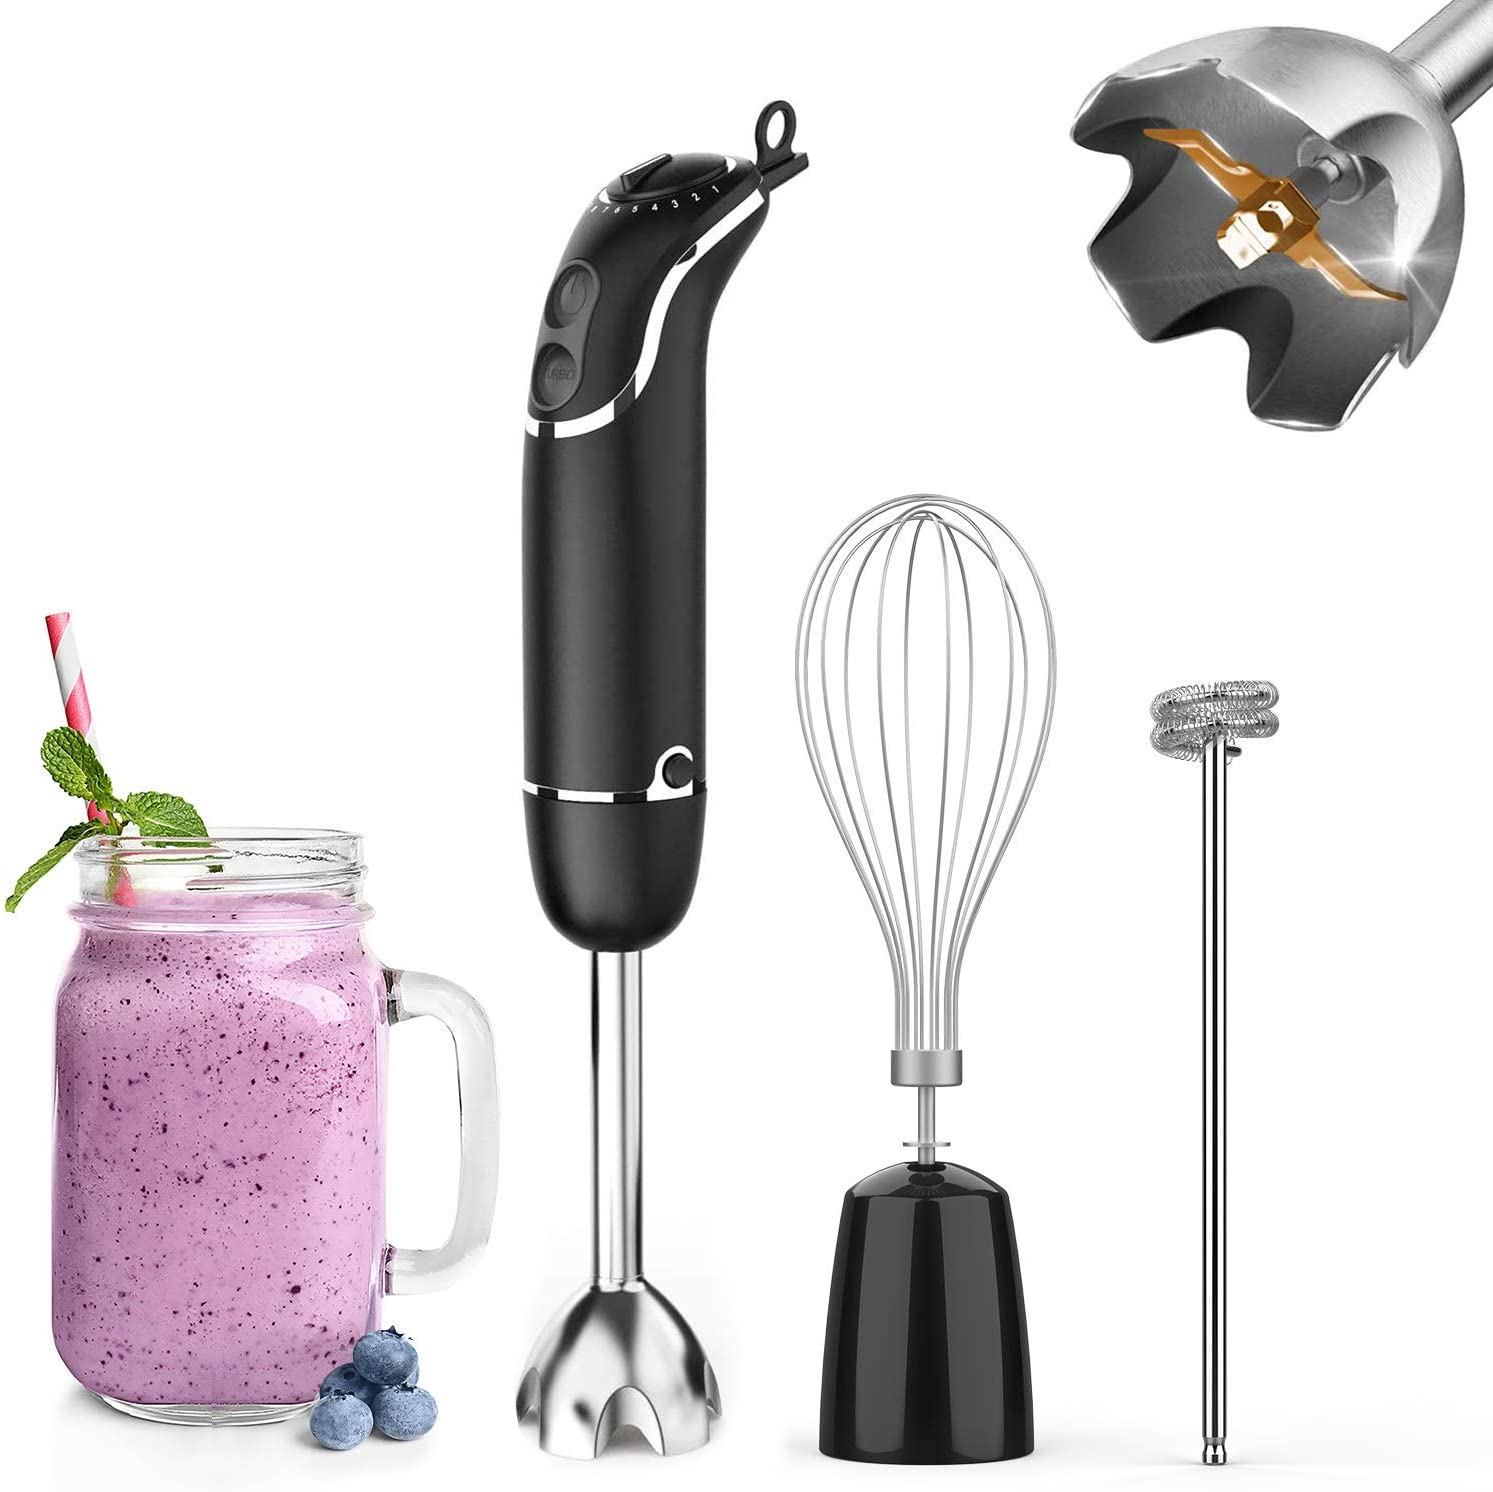 KOIOS 800-Watt/ 12-Speed Immersion Hand Blender(Titanium Reinforced), Turbo for Finer Results, 3-in-1 Set Includes BPA-Free Food Chopper / Egg Beater /Milk Frother Ergonomic Grip, Detachable (Renewed)